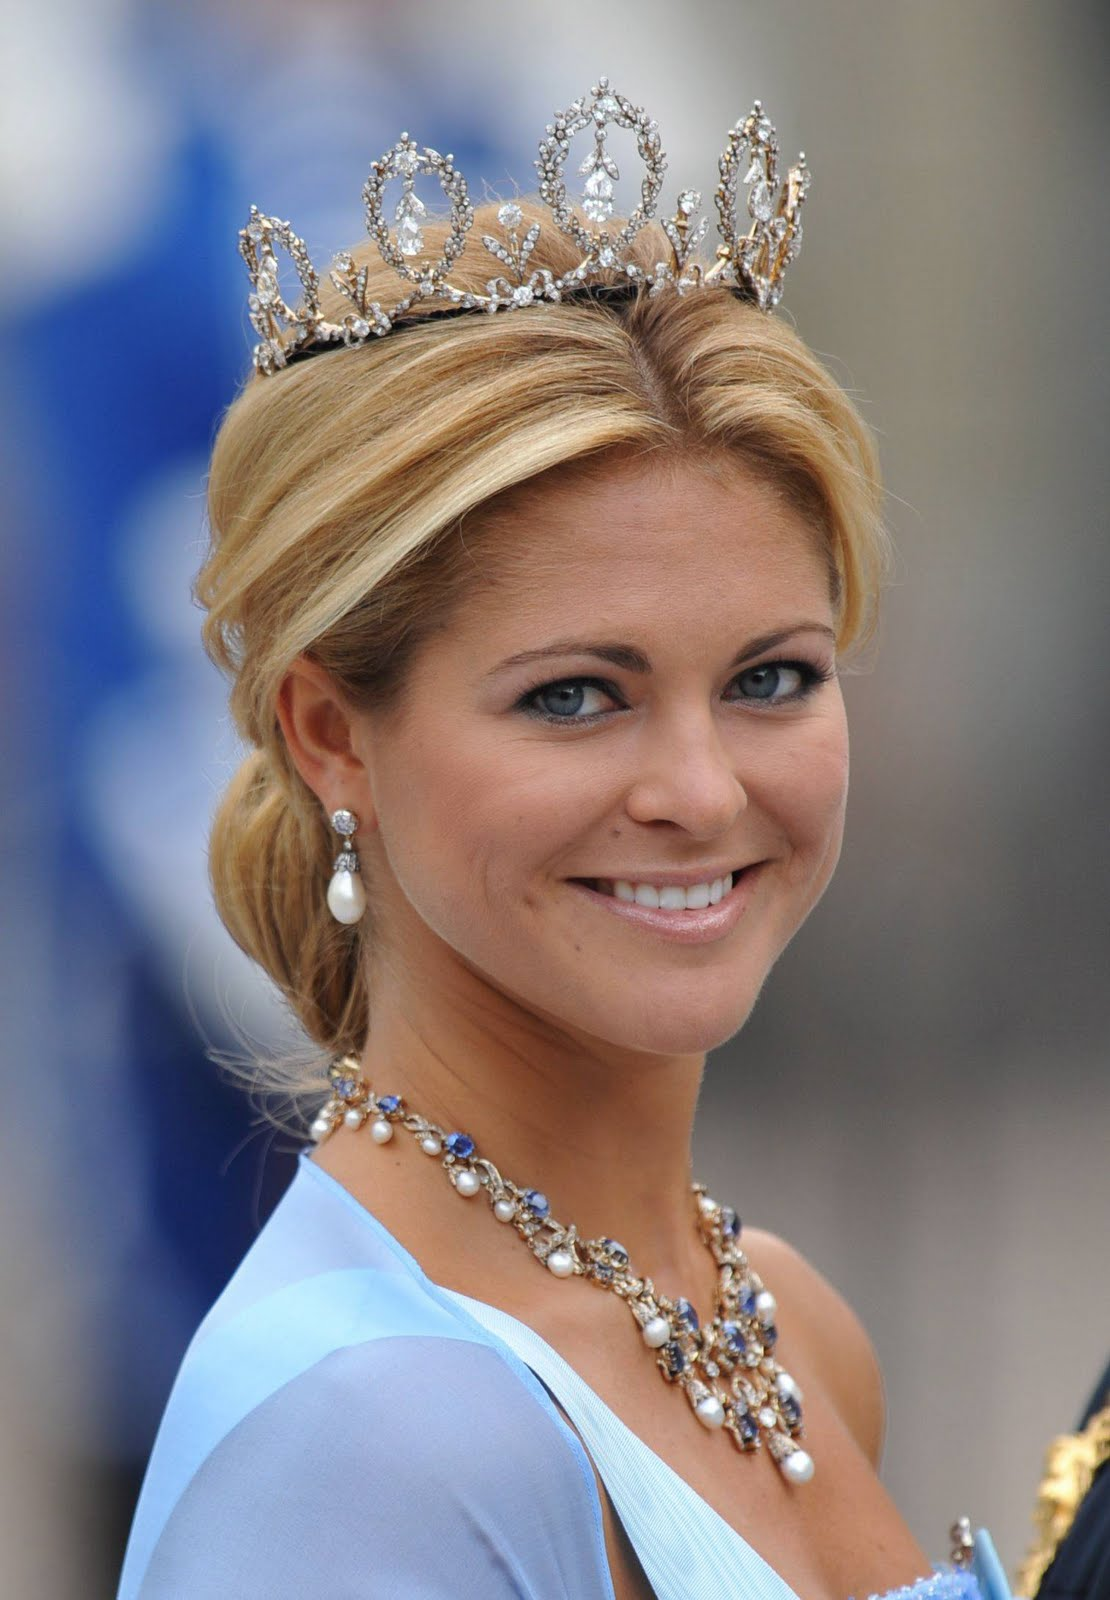 Princess Madeleine from Sweden